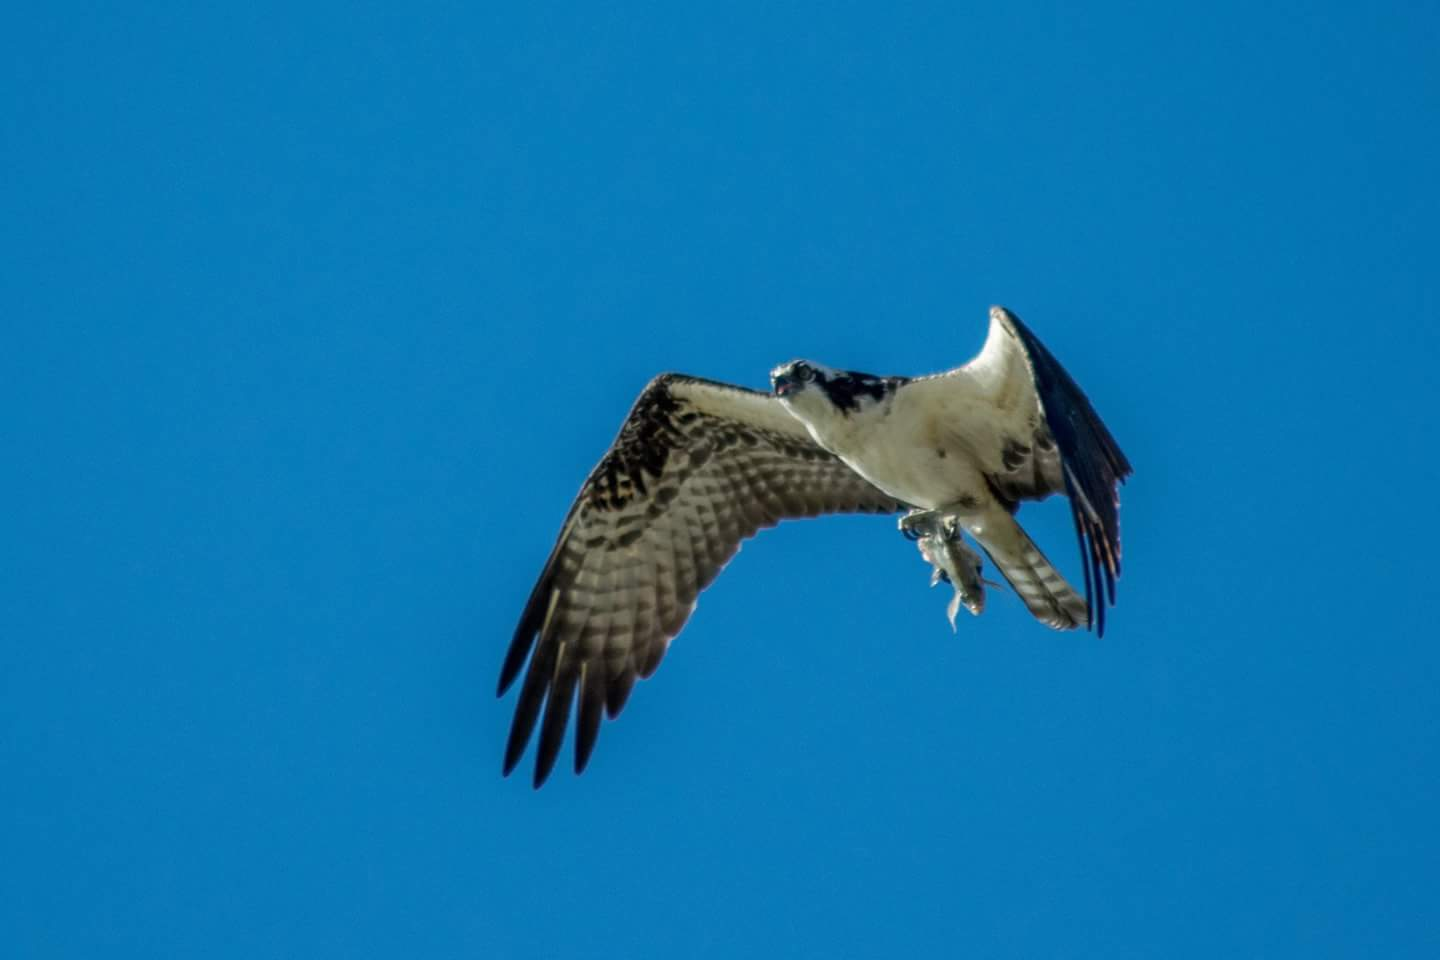 An osprey flies through a blue sky with a fish in it's talons